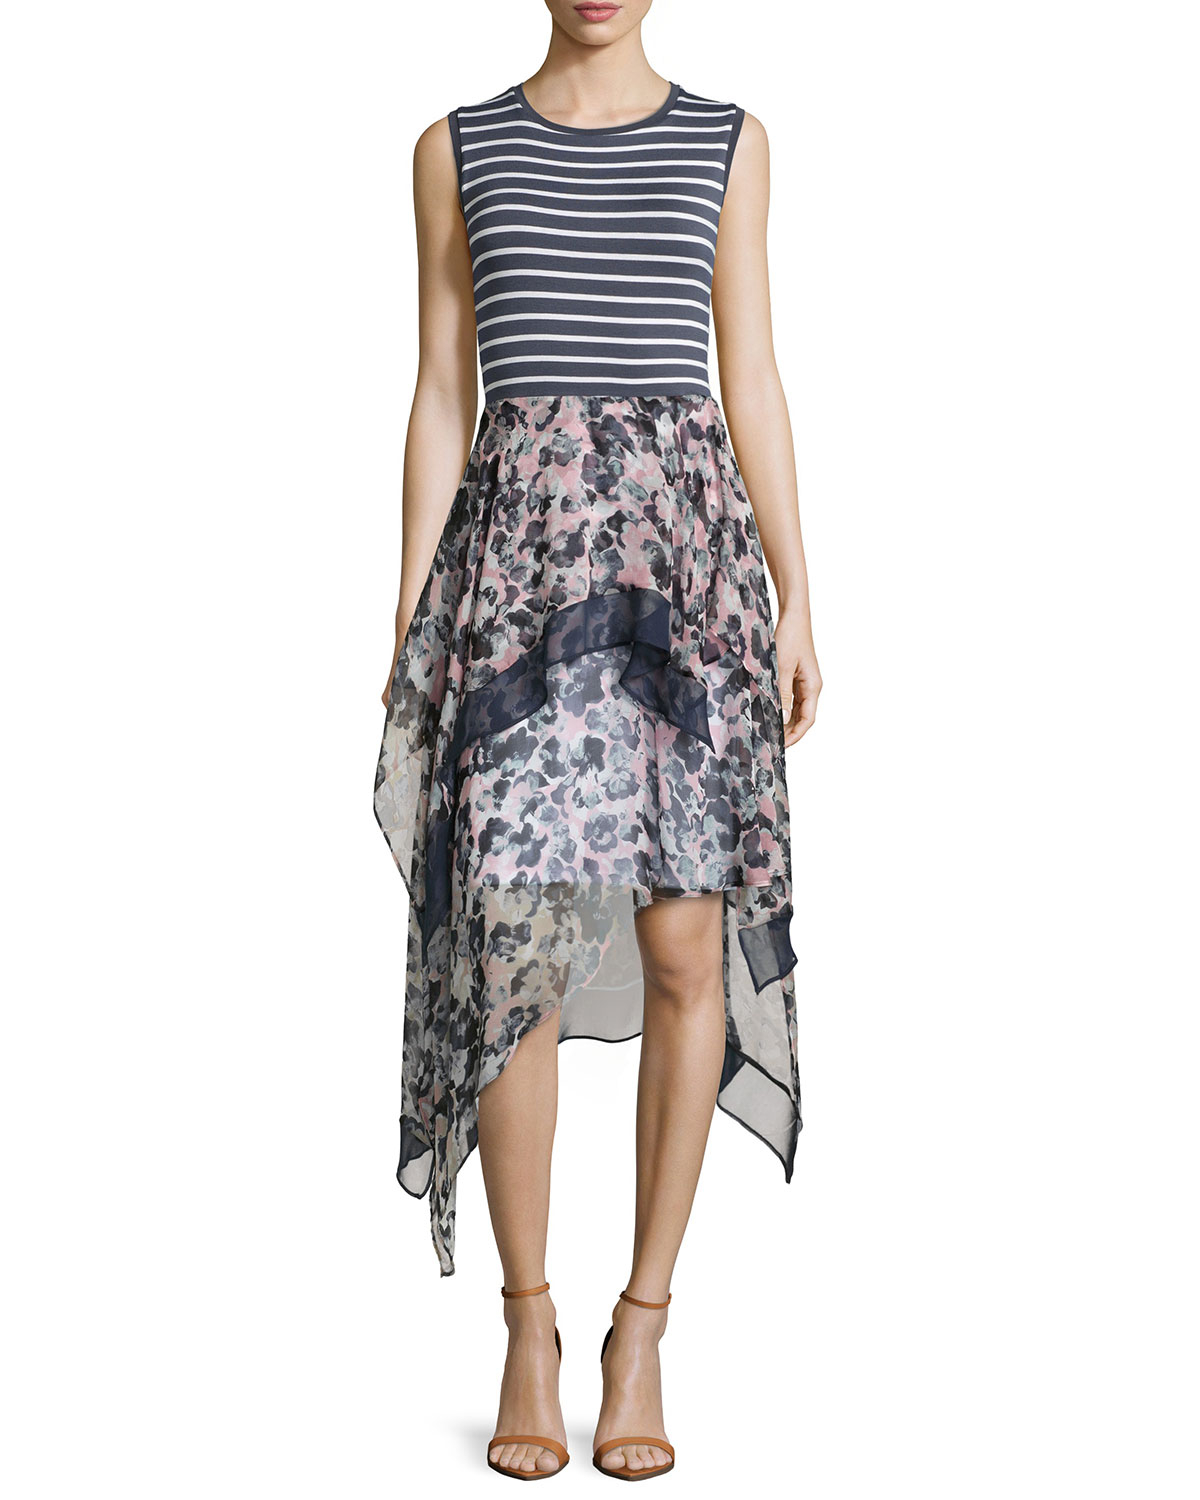 Lyst Bailey 44 Striped Floral Print Combo Dress In Black